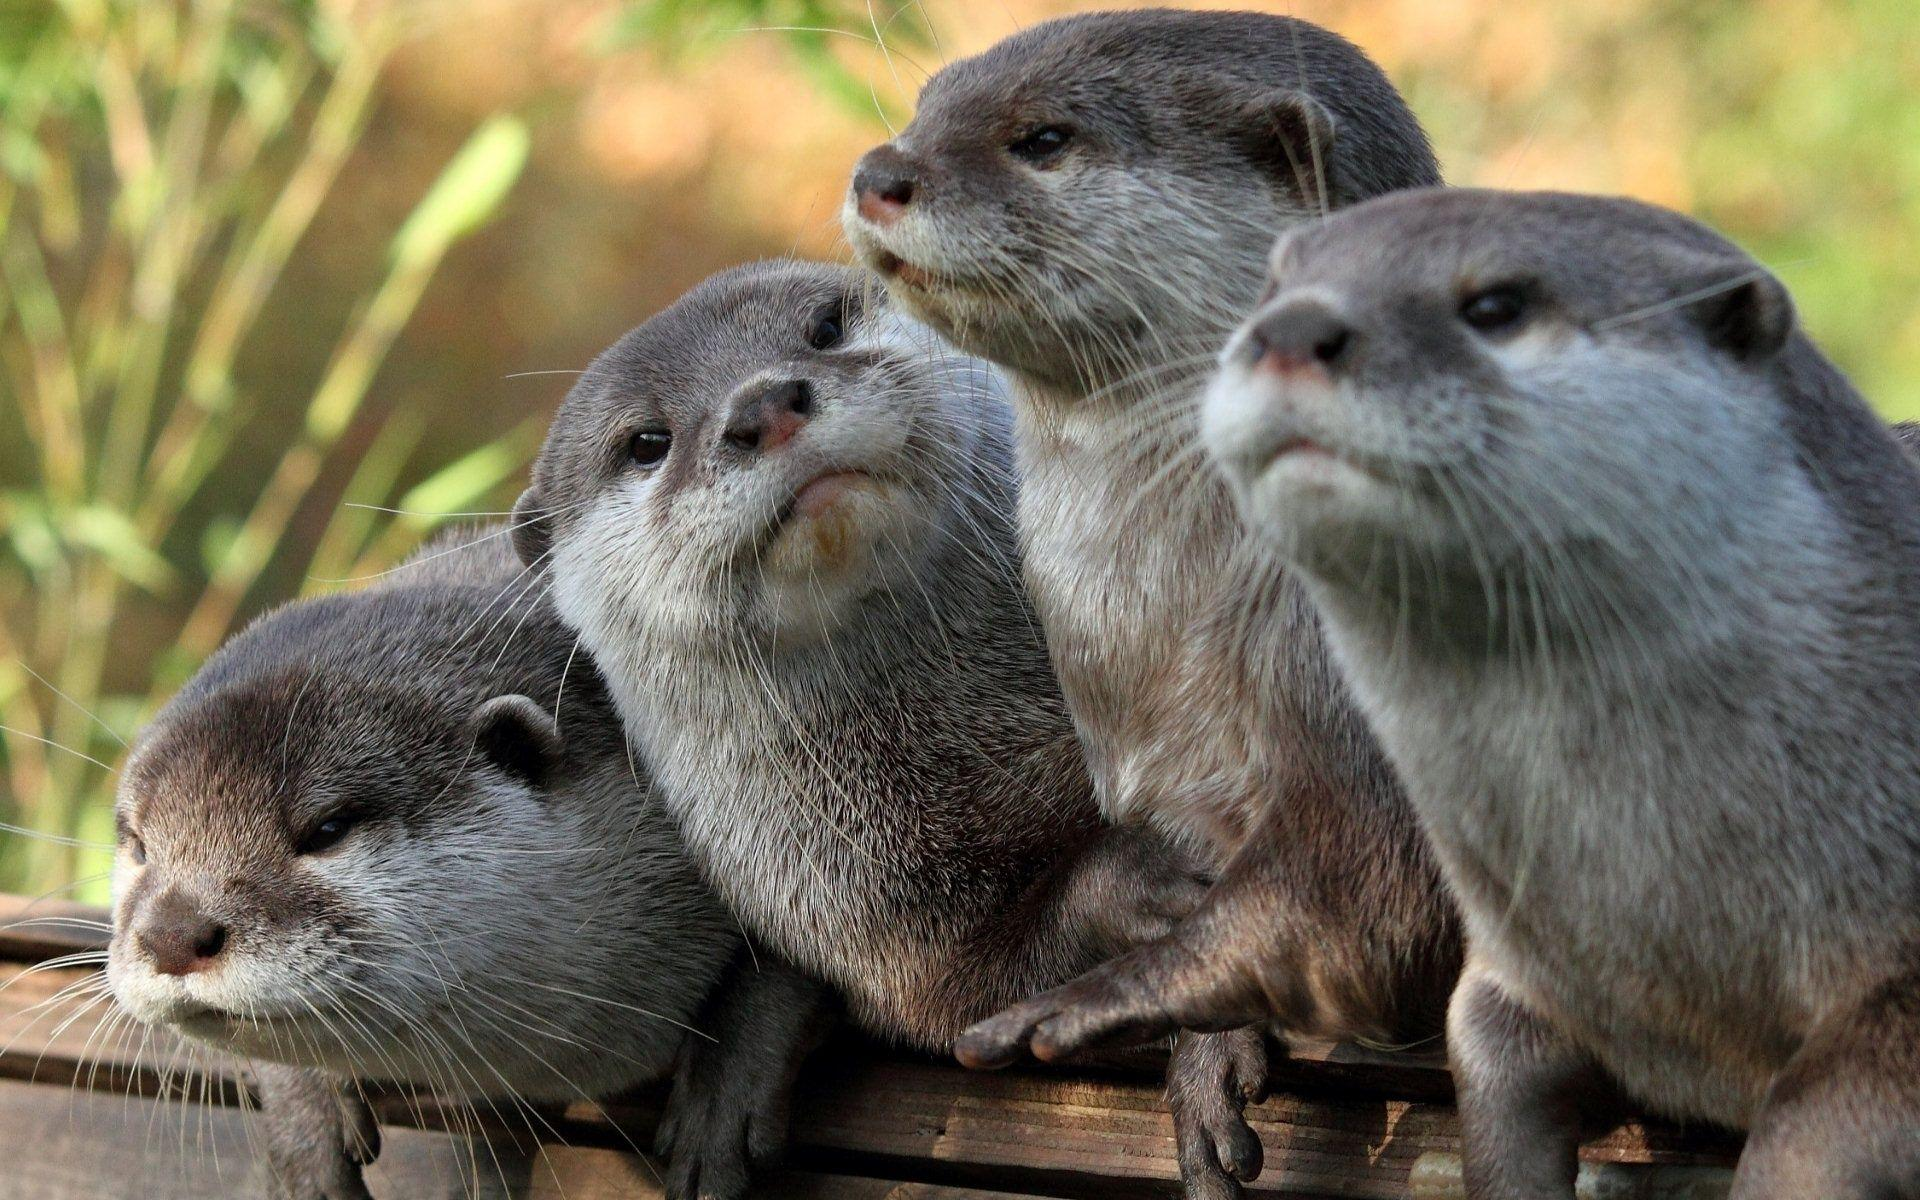 Otter Wallpapers HD 15327 1920x1200